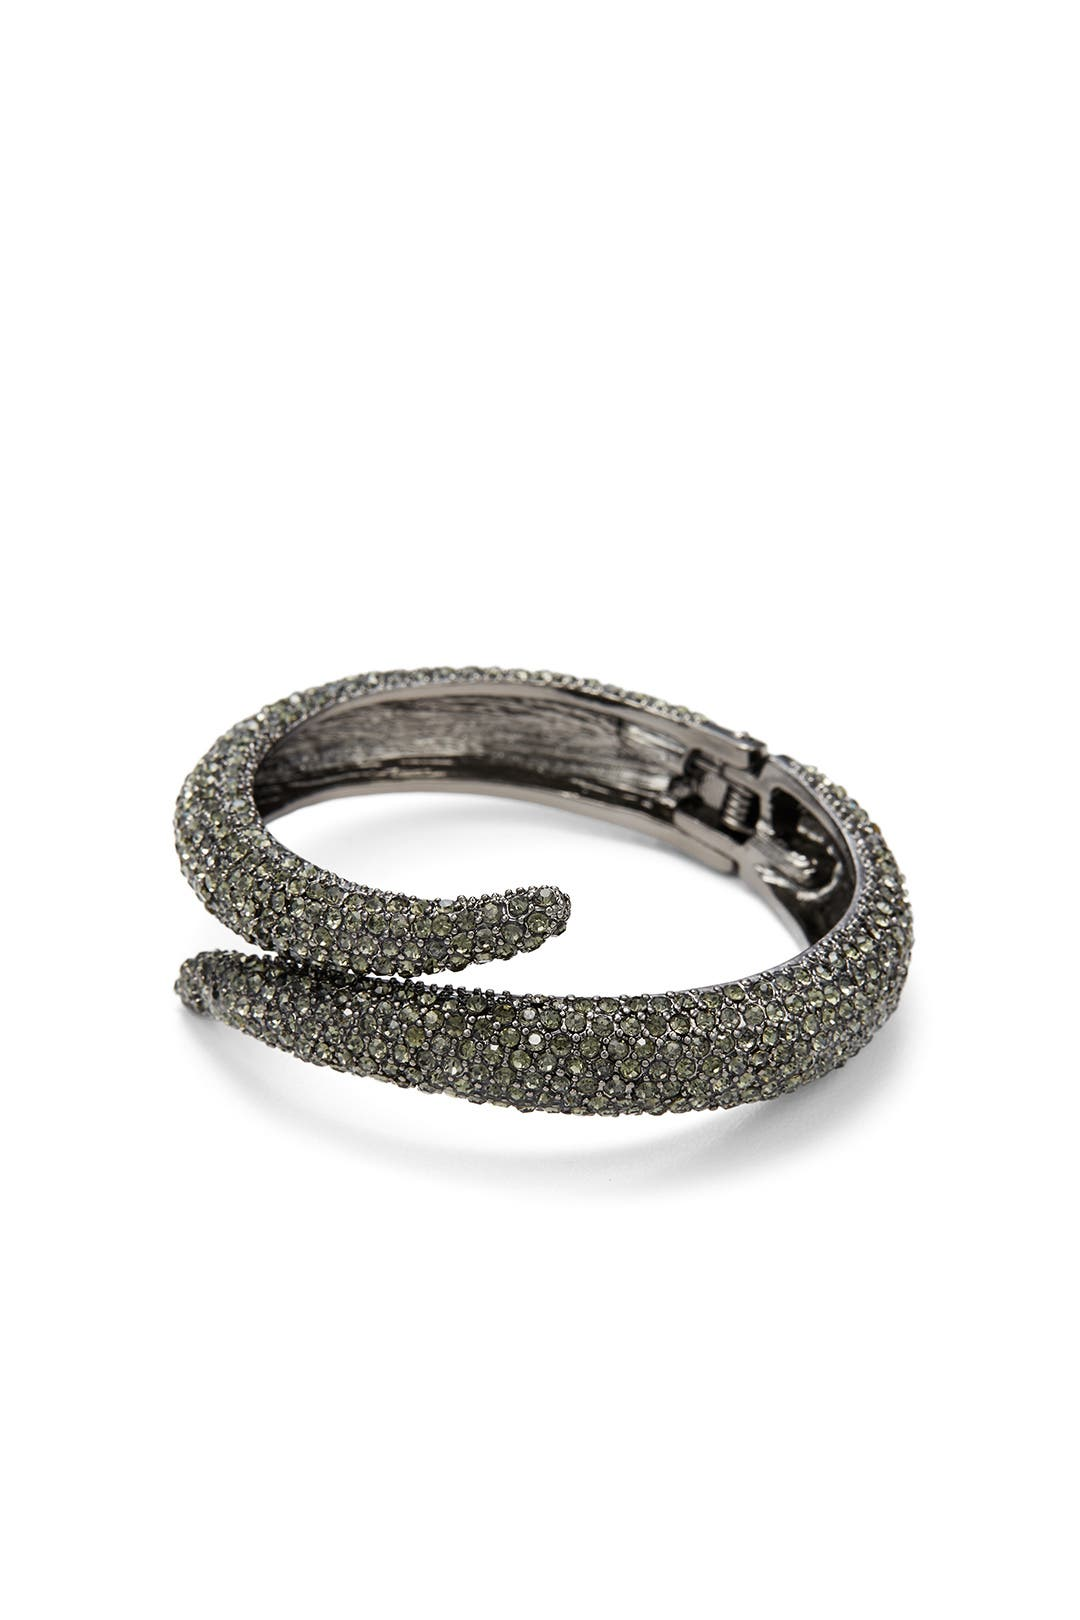 6b752242ce23f0 Black Diamond Pave Bracelet by Slate   Willow Accessories for  10 ...